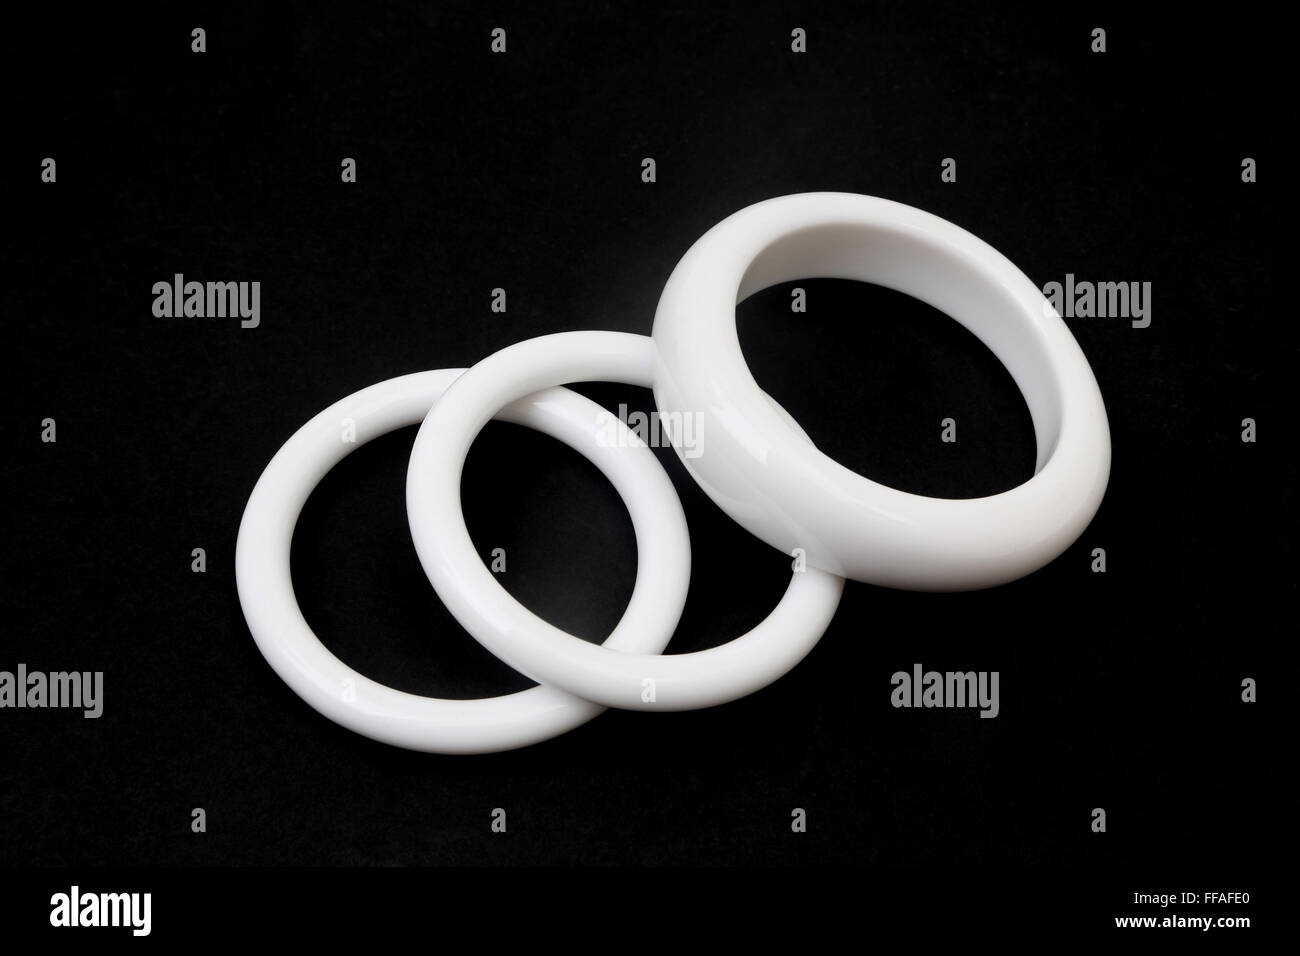 Dress Jewellery -  Three White Plastic Bangles - Stock Image